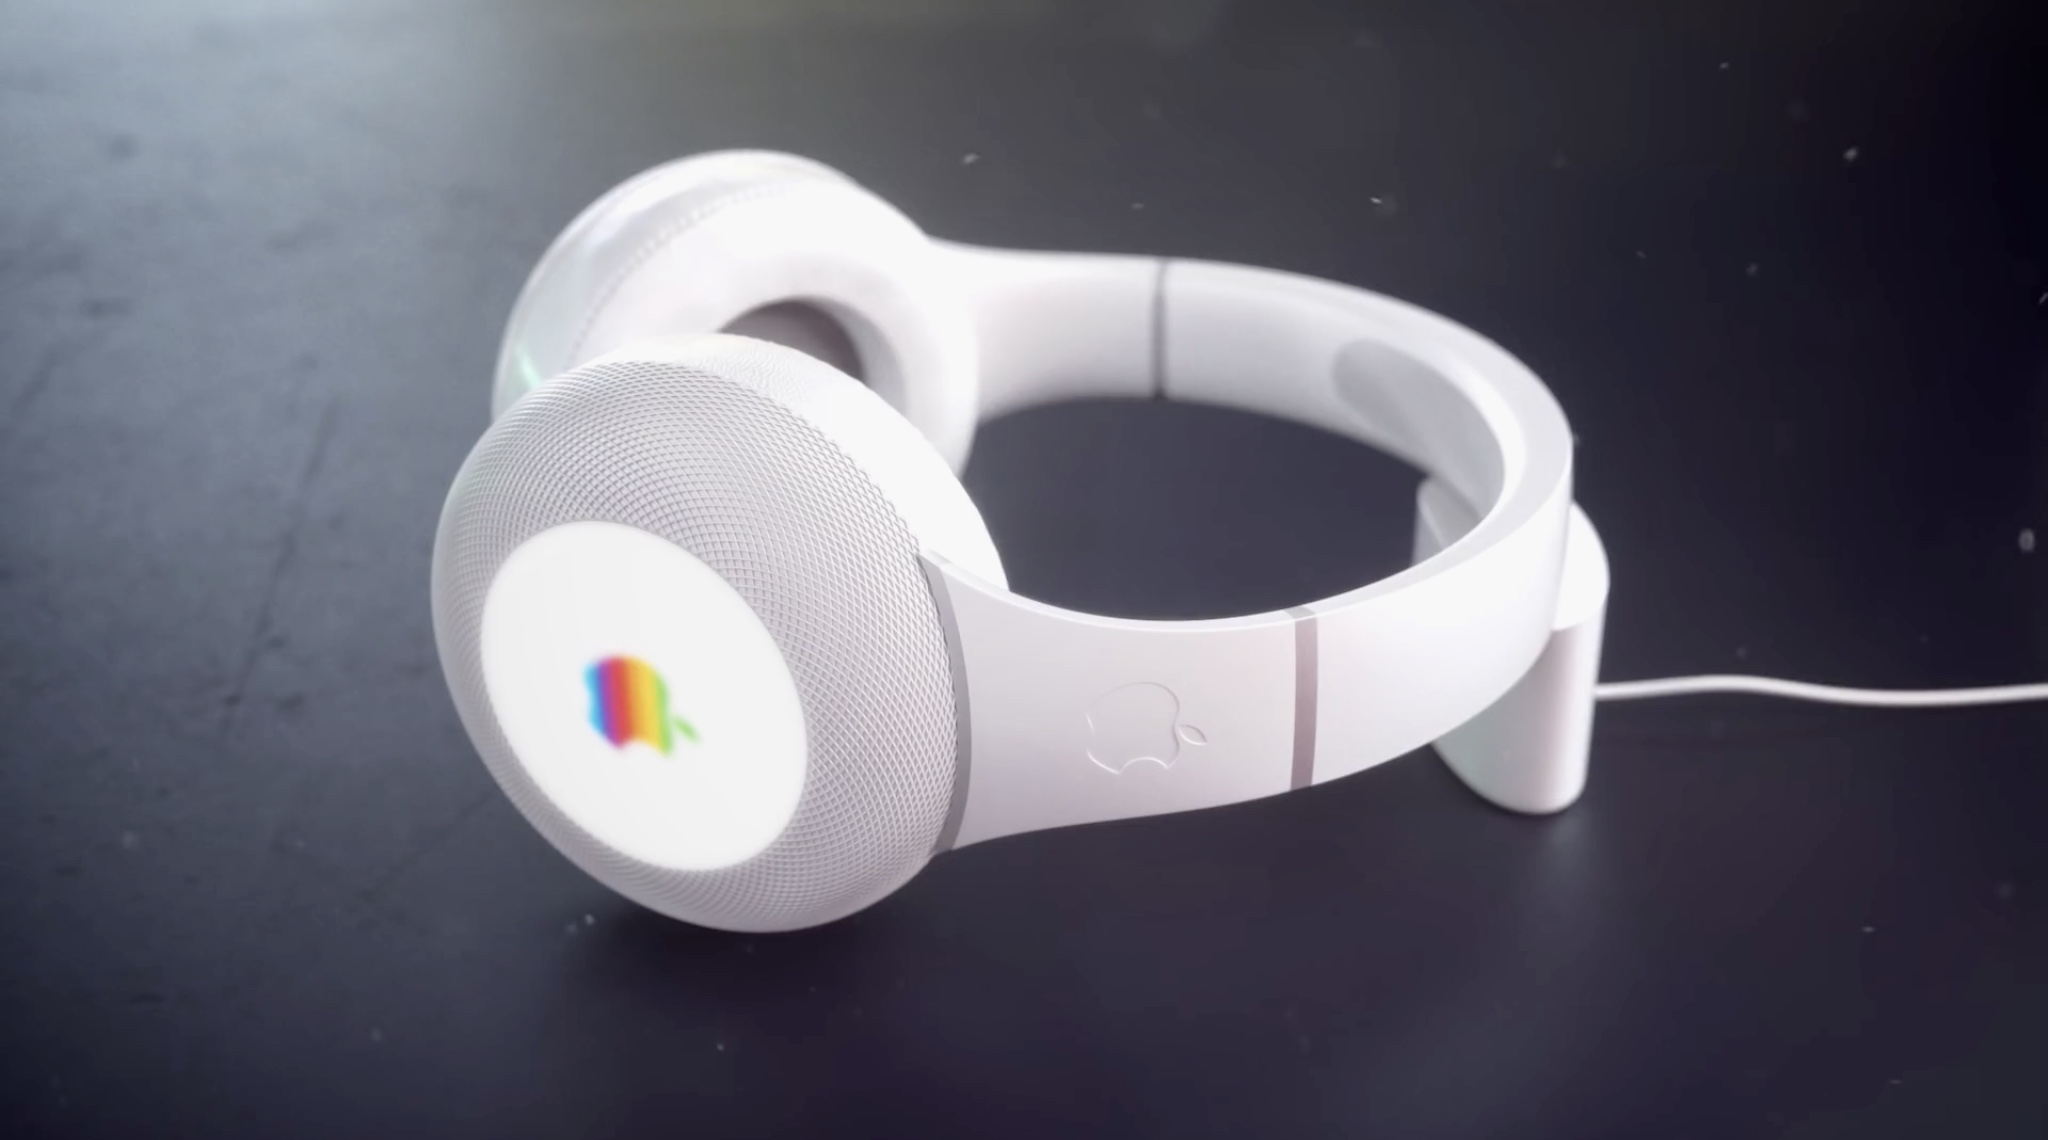 Next-gen Apple headphones could be as customizable as the Apple Watch